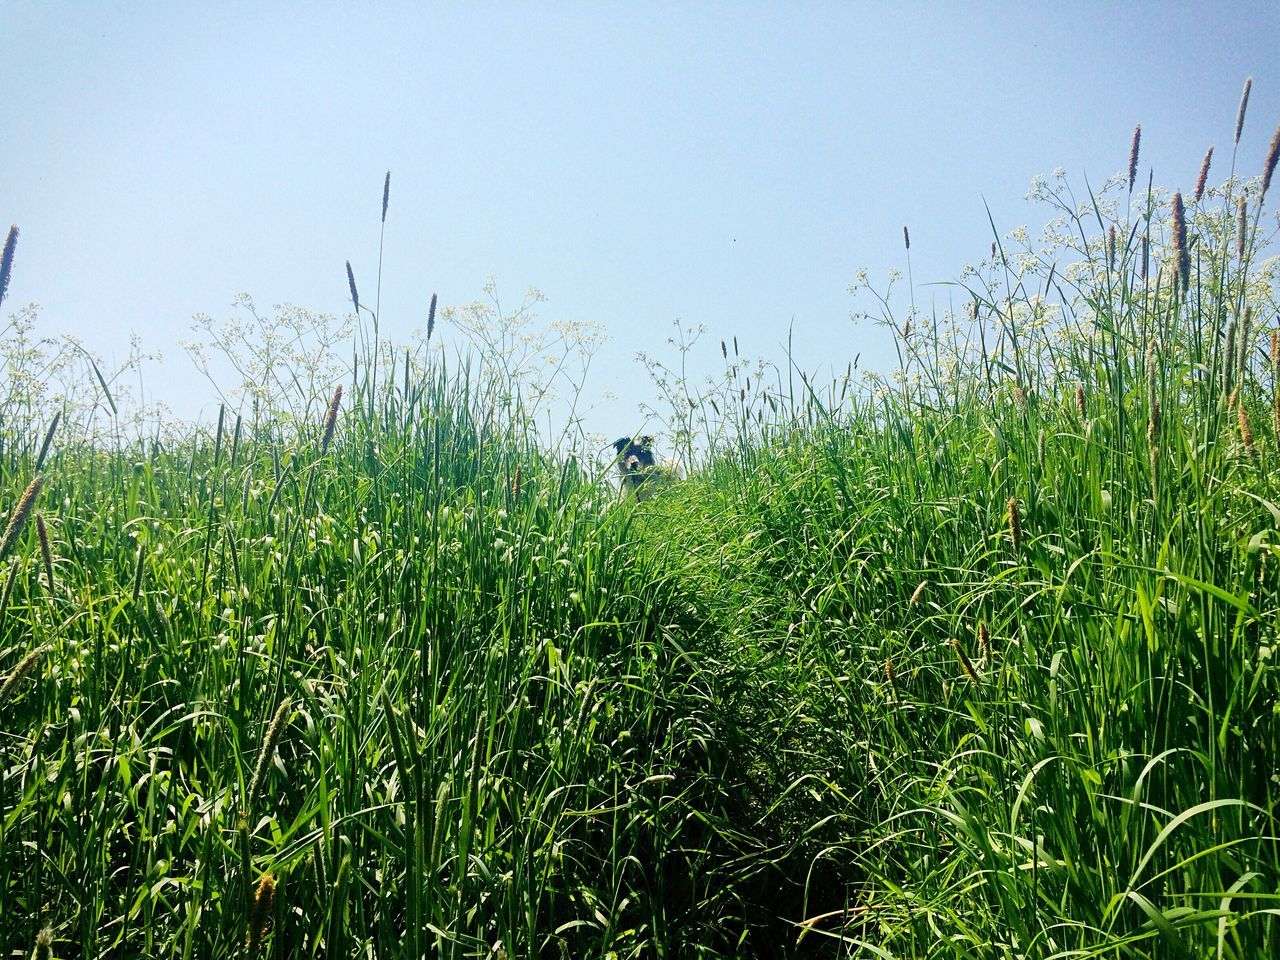 """Are you coming?"" Grassy Grass Day Sky Long Grass Green Up Shot Hill Plant Animal Dog High Angle View Blue Tranquil Scene Landscape Nature Beauty In Nature"